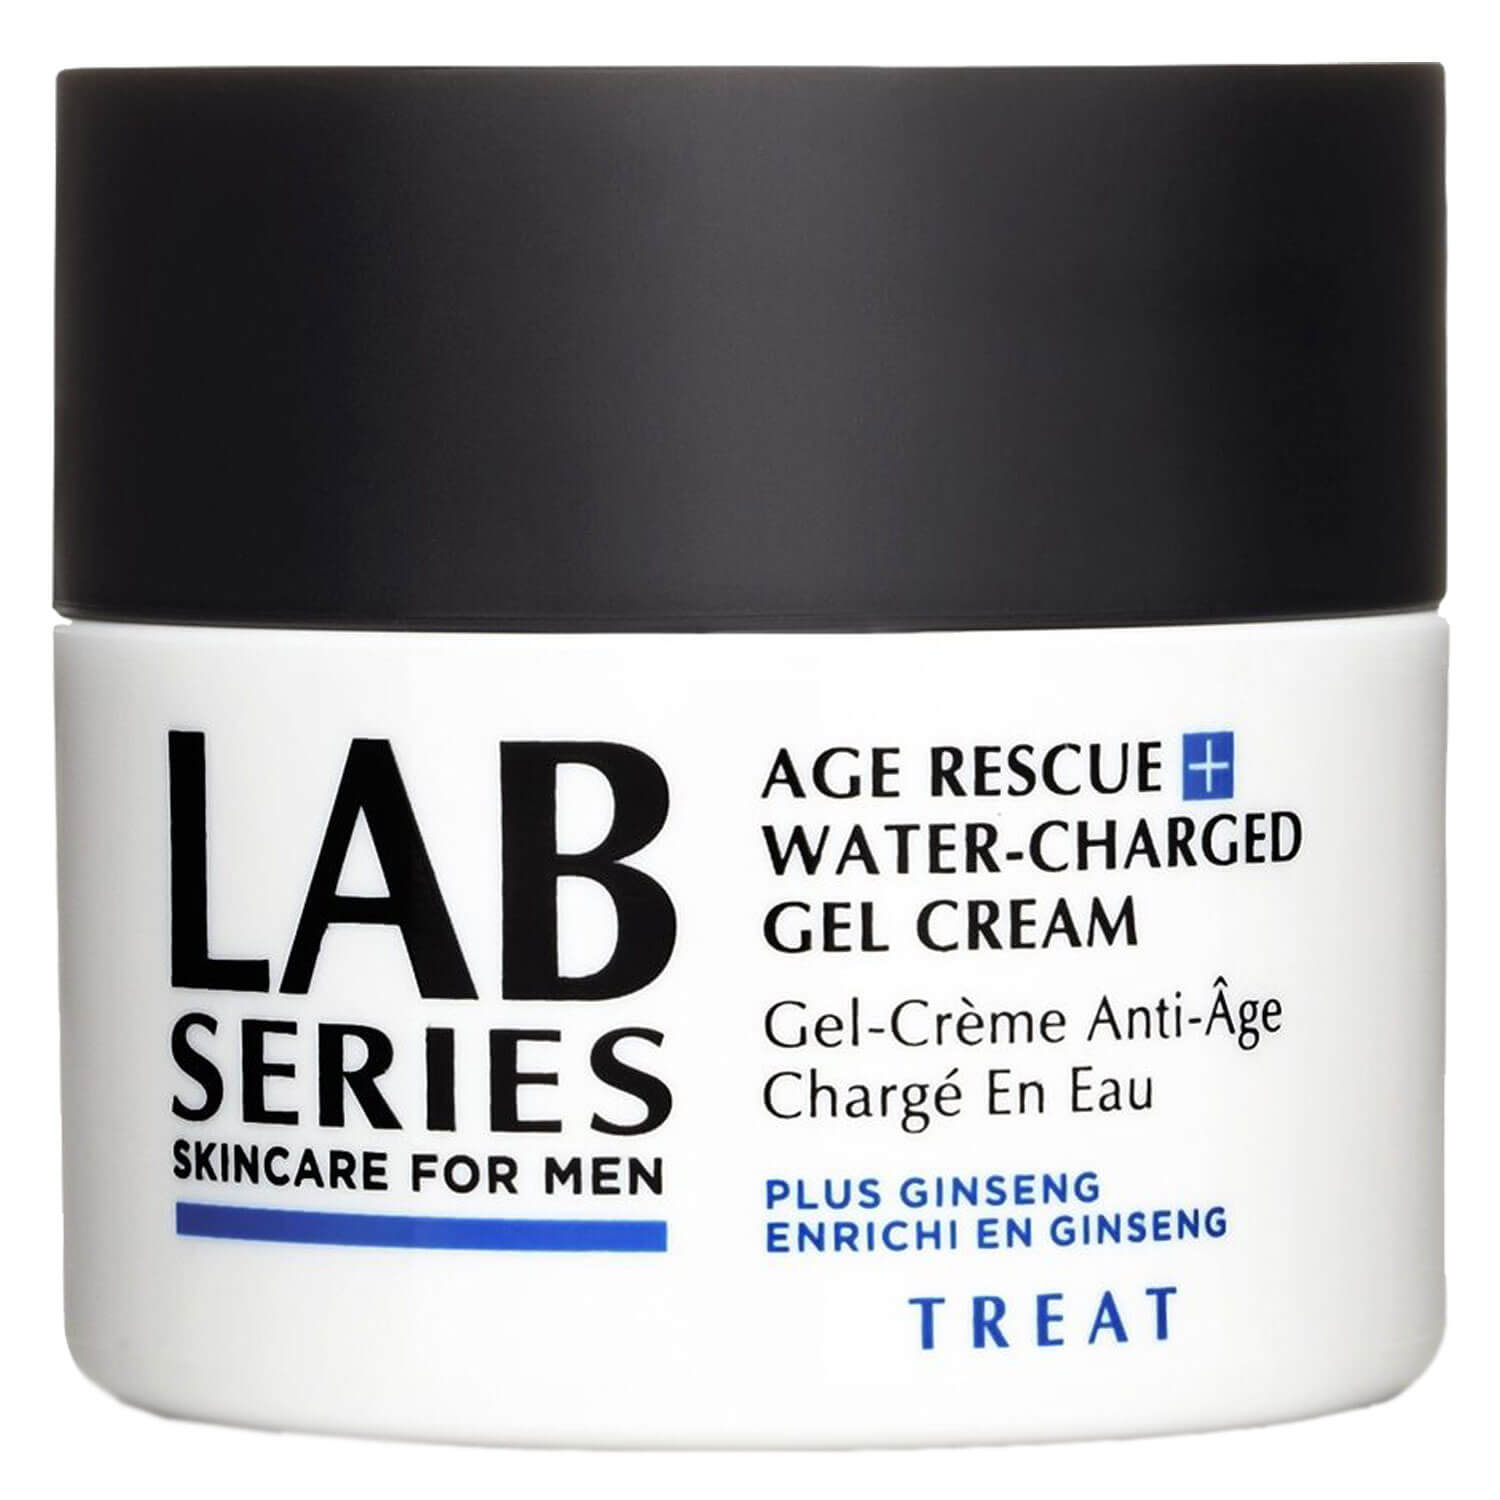 Treat - Age Rescue Water Charged Gel Cream